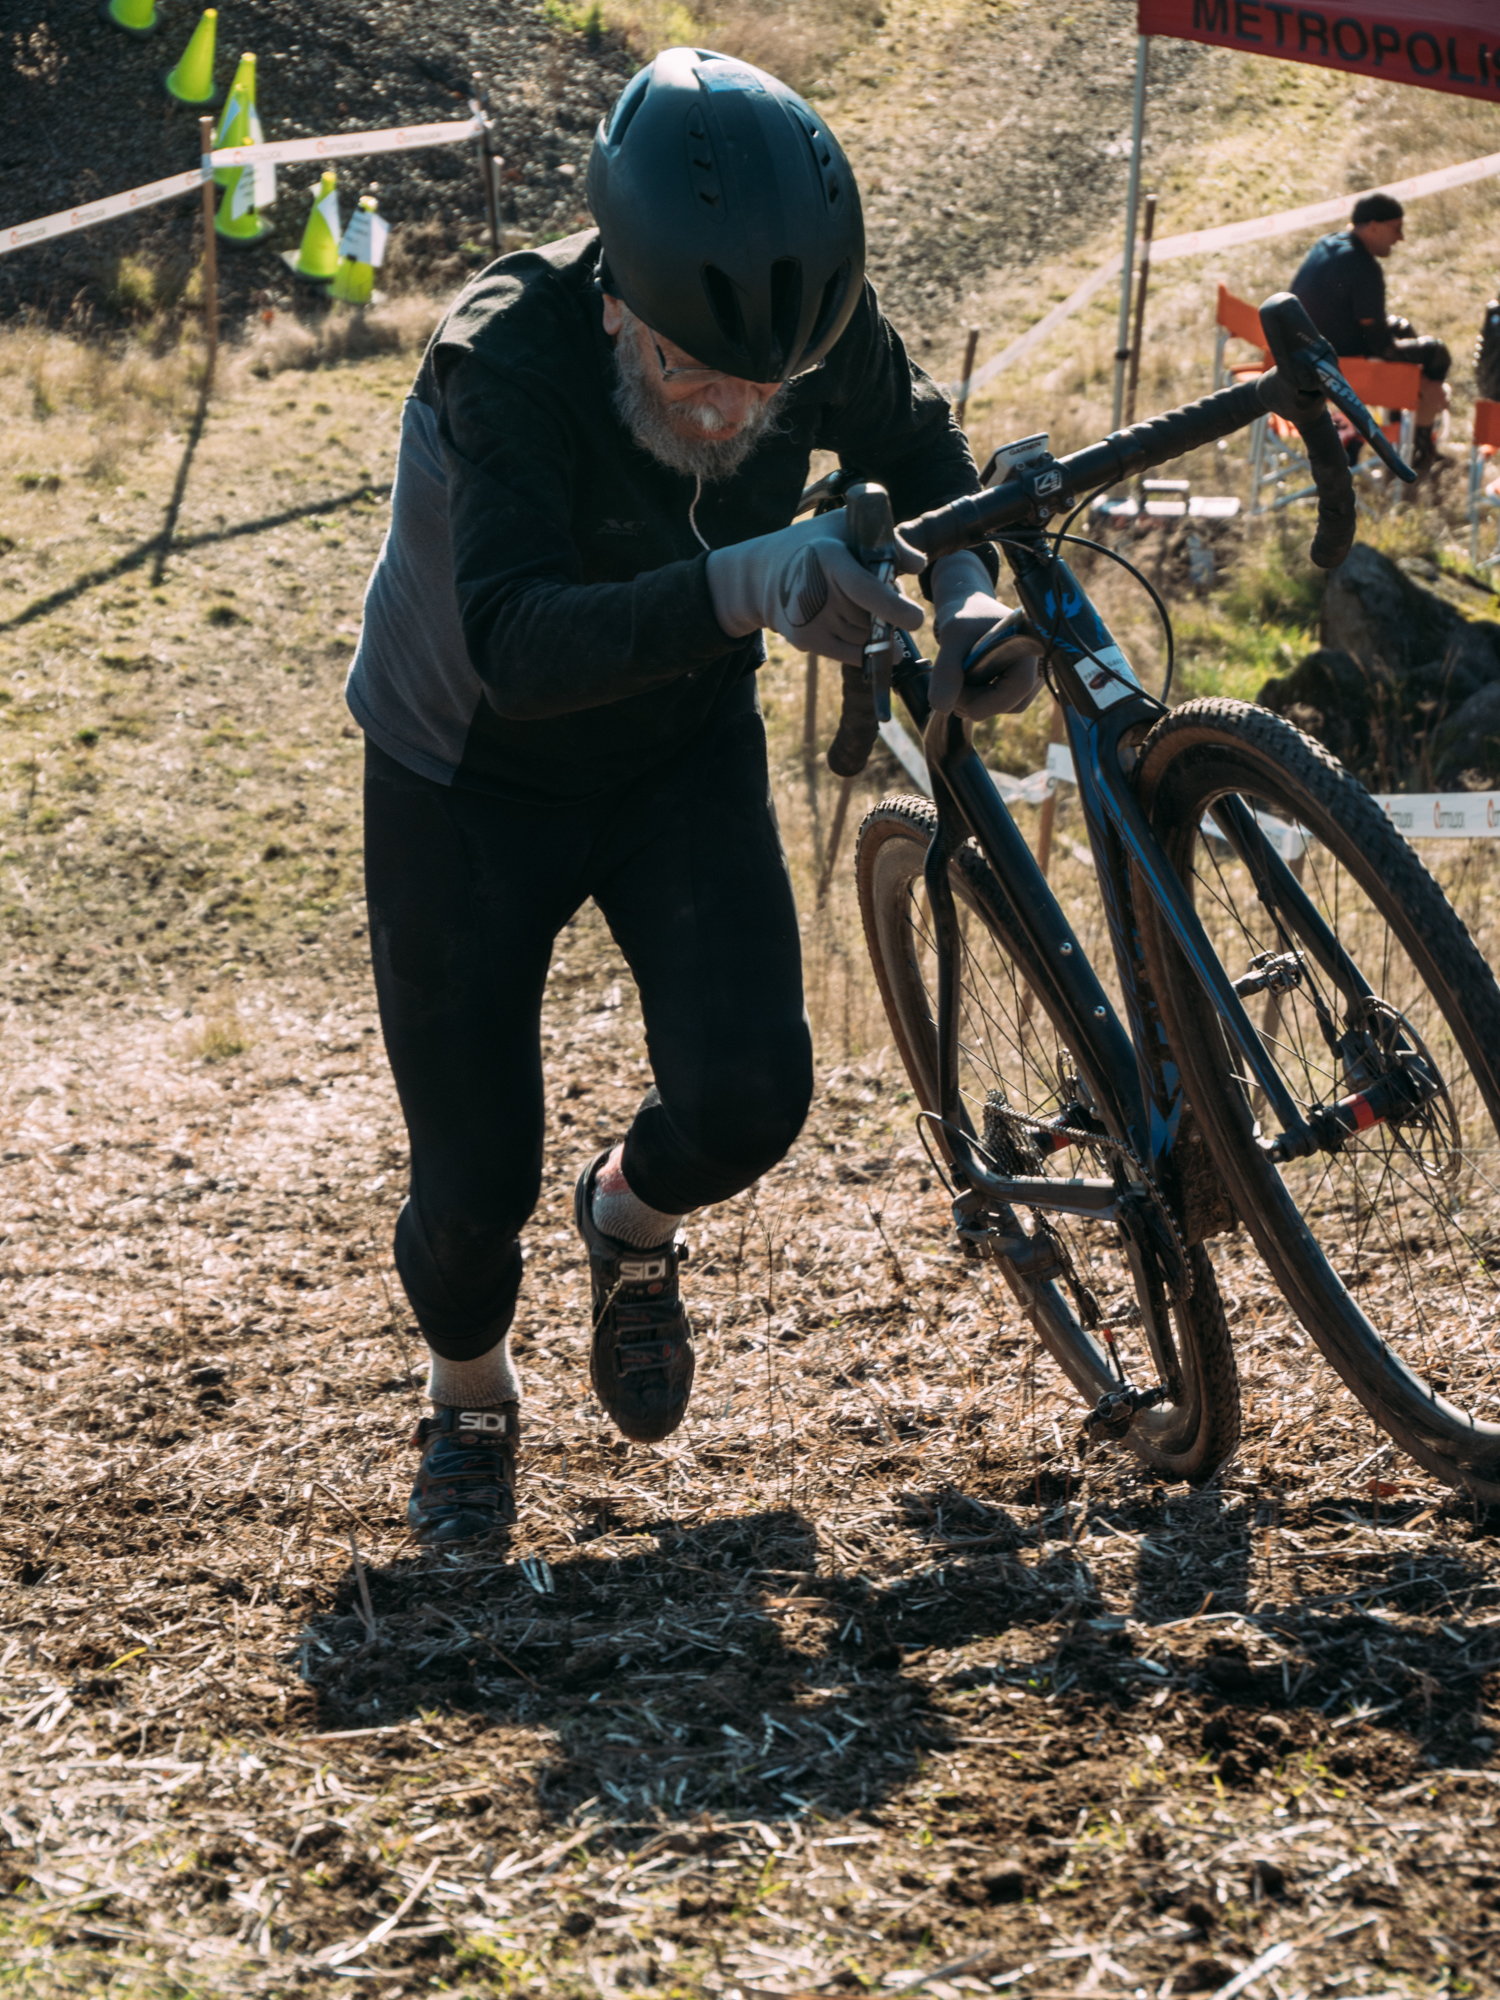 Cyclocross18_CCCX_BartonPark-mettlecycling47.jpg